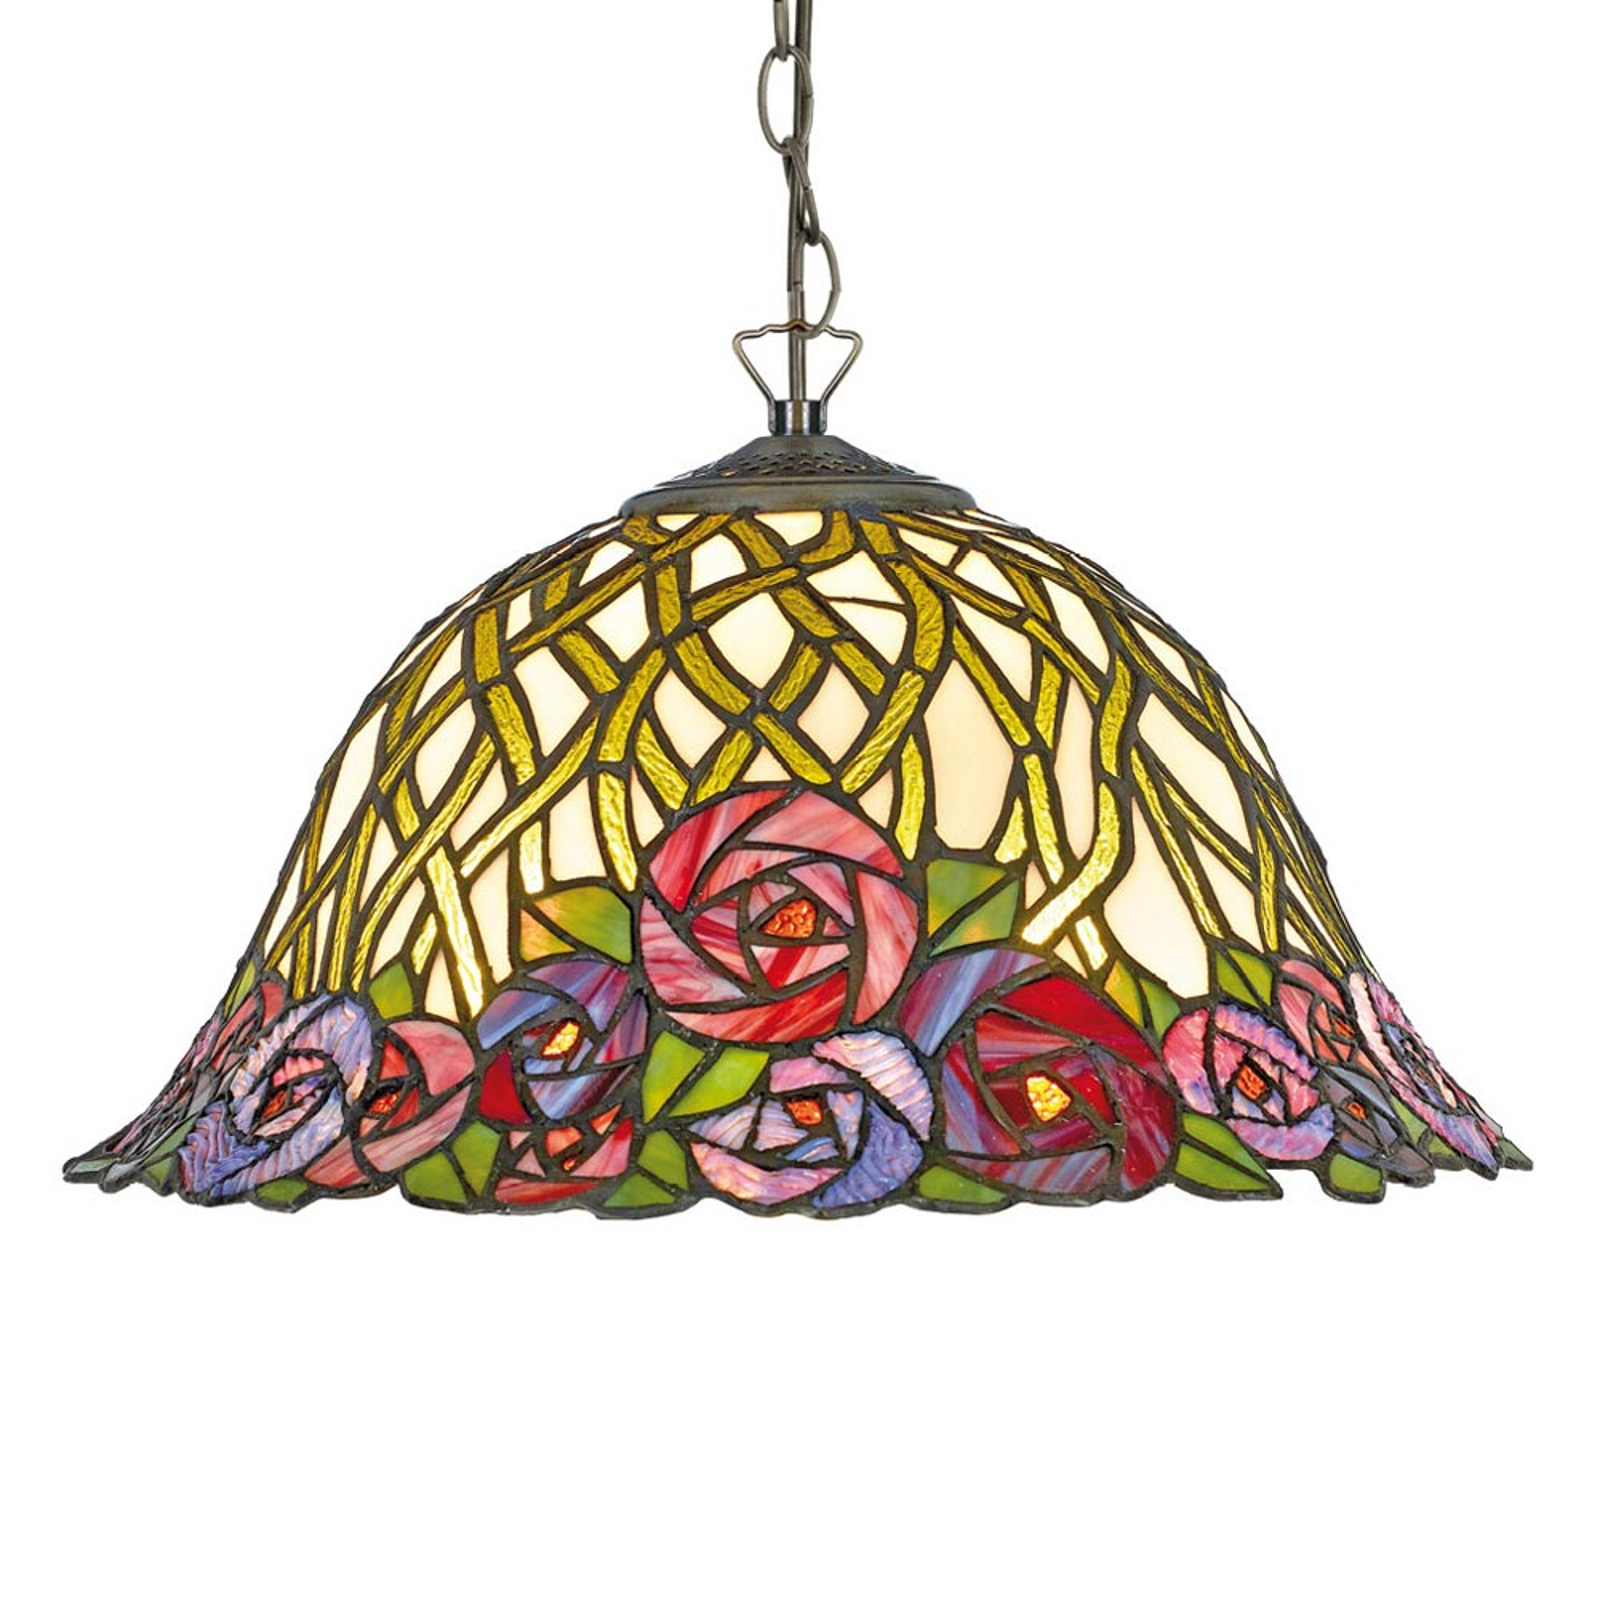 Suspension Melika de style Tiffany, 1 lampe